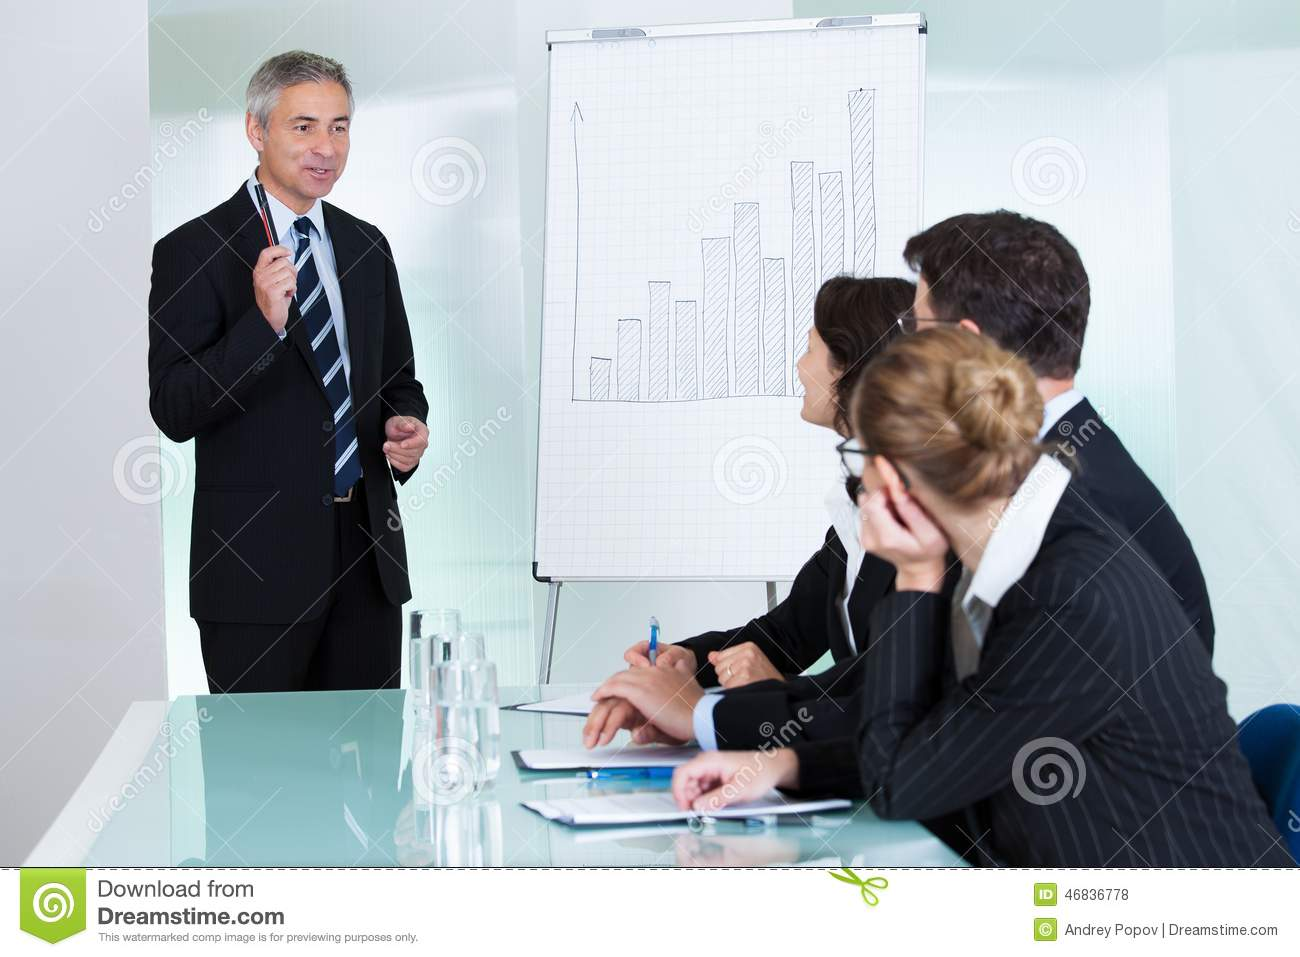 Executive Presentations: Presenting Status vs. Strategy